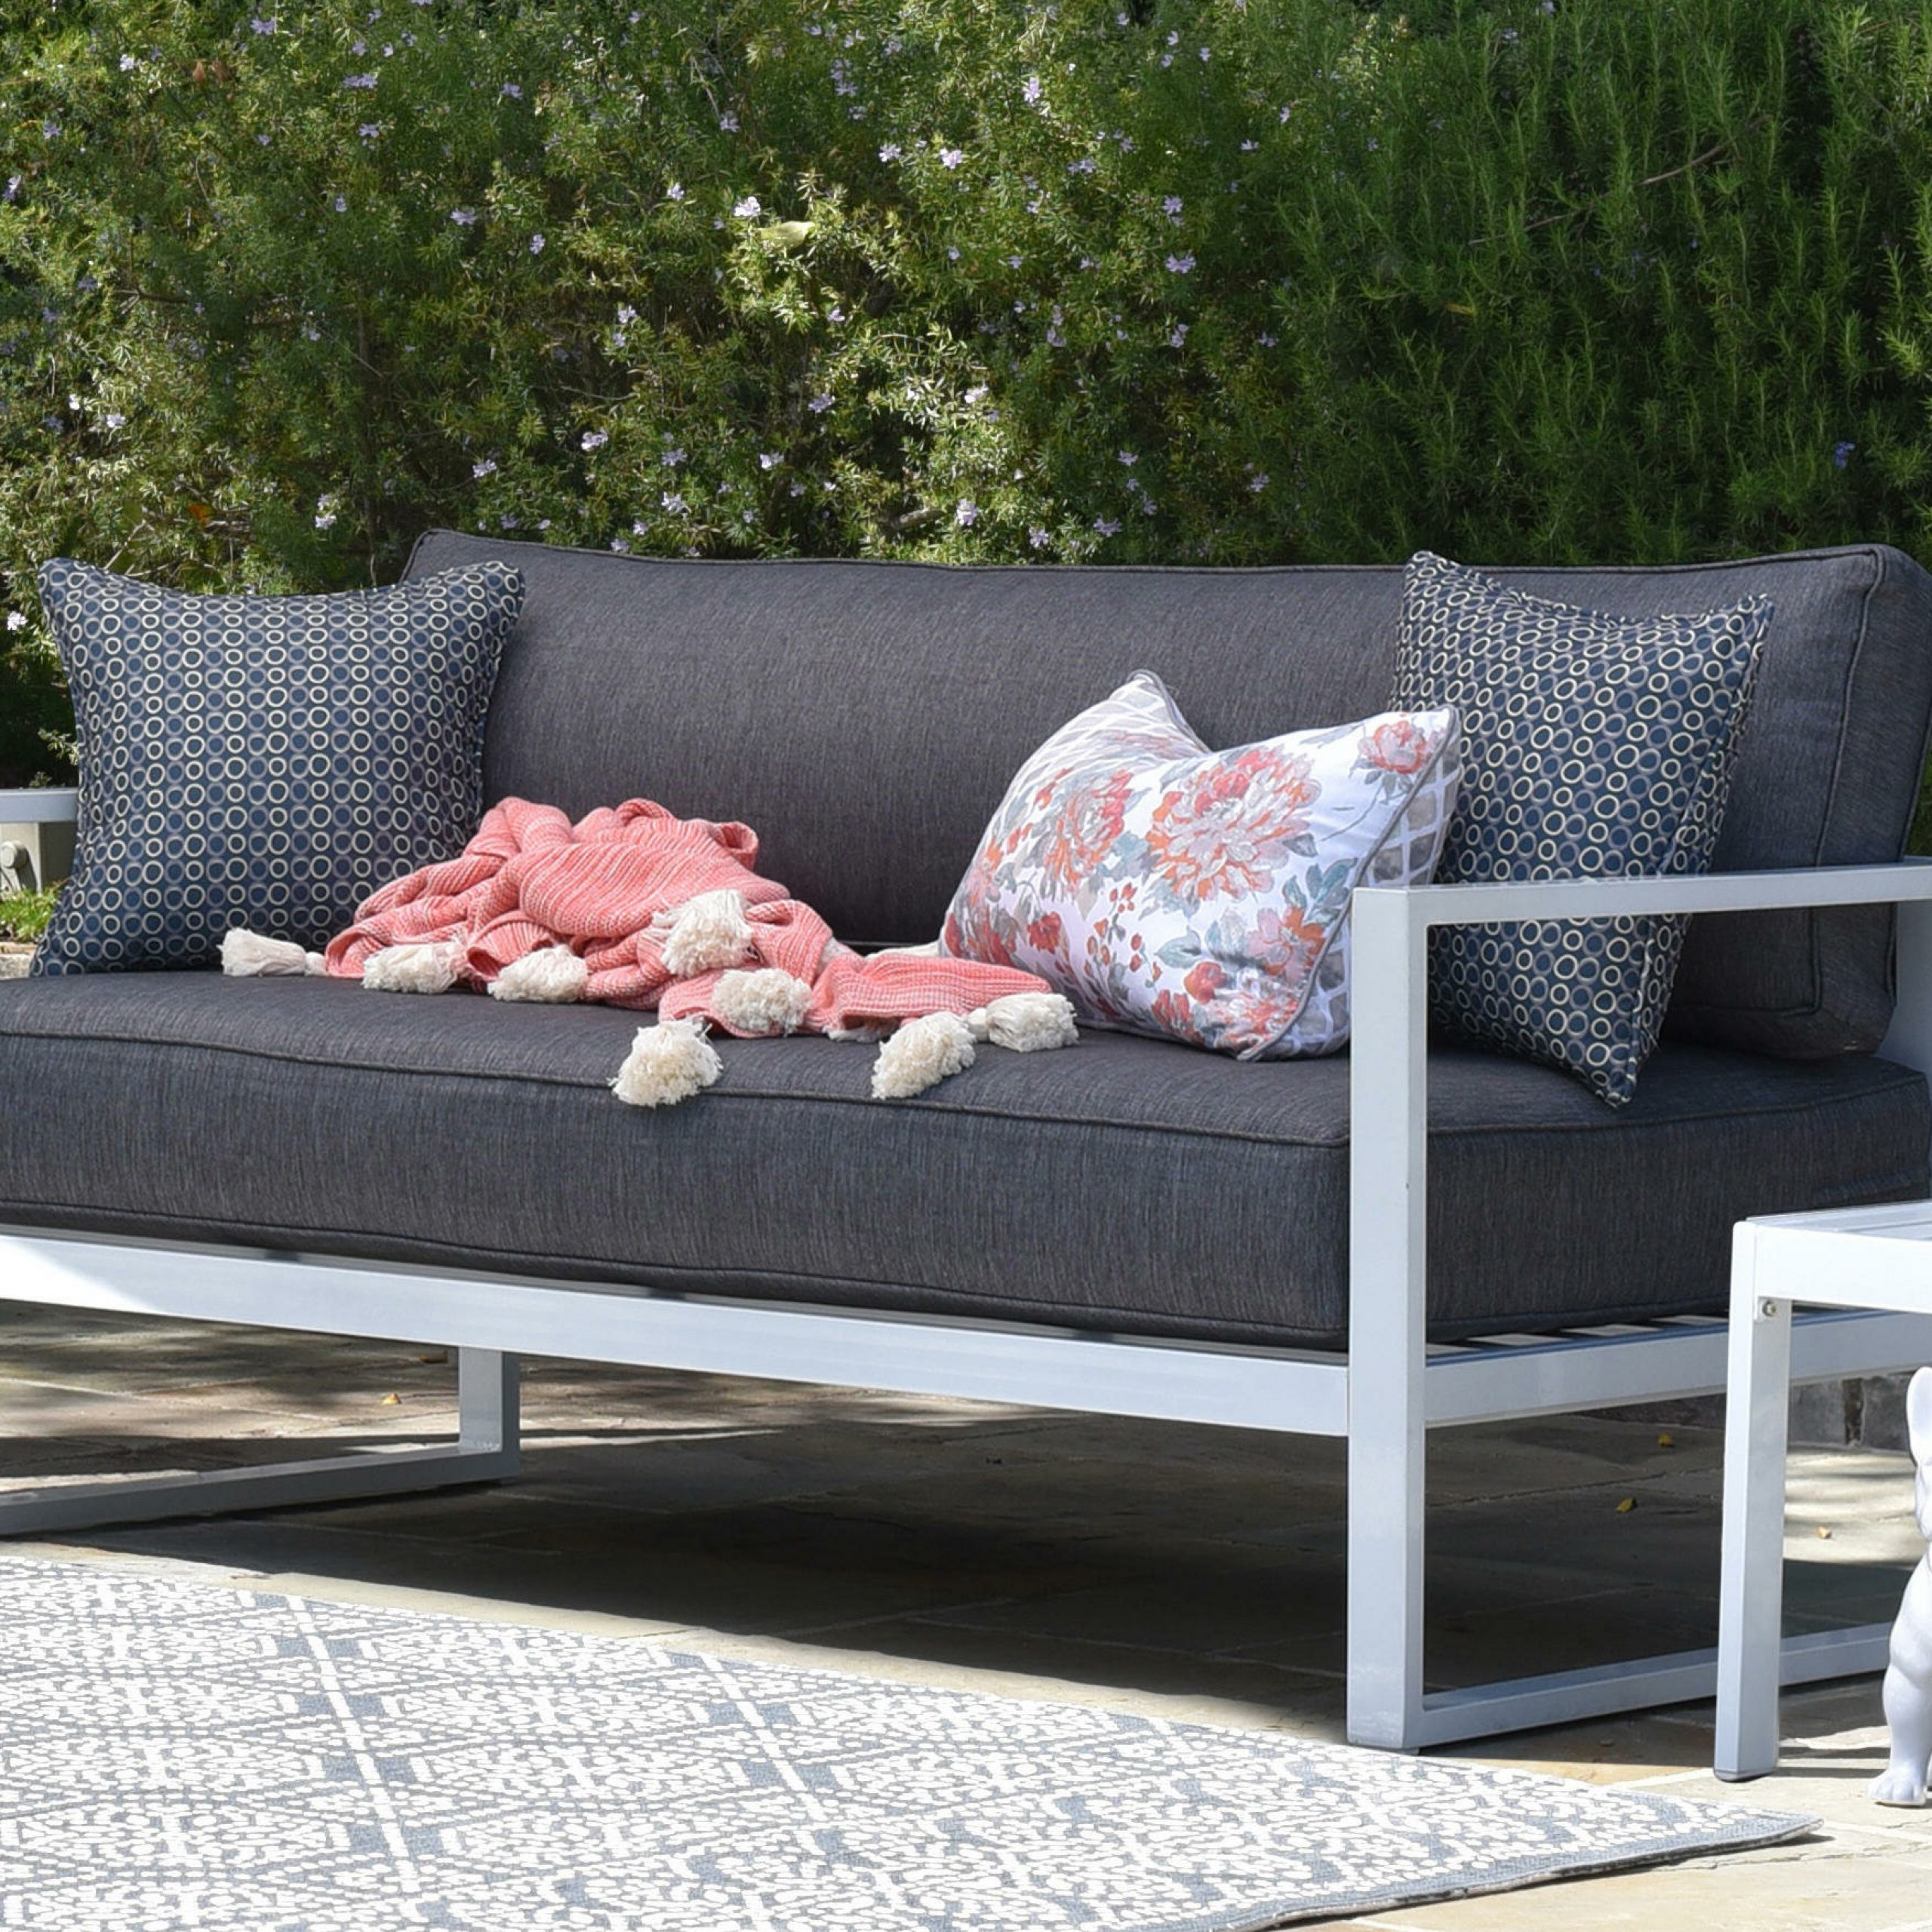 Paloma Sofa With Cushions Throughout Most Current Repp Patio Sofas With Cushion (View 13 of 25)